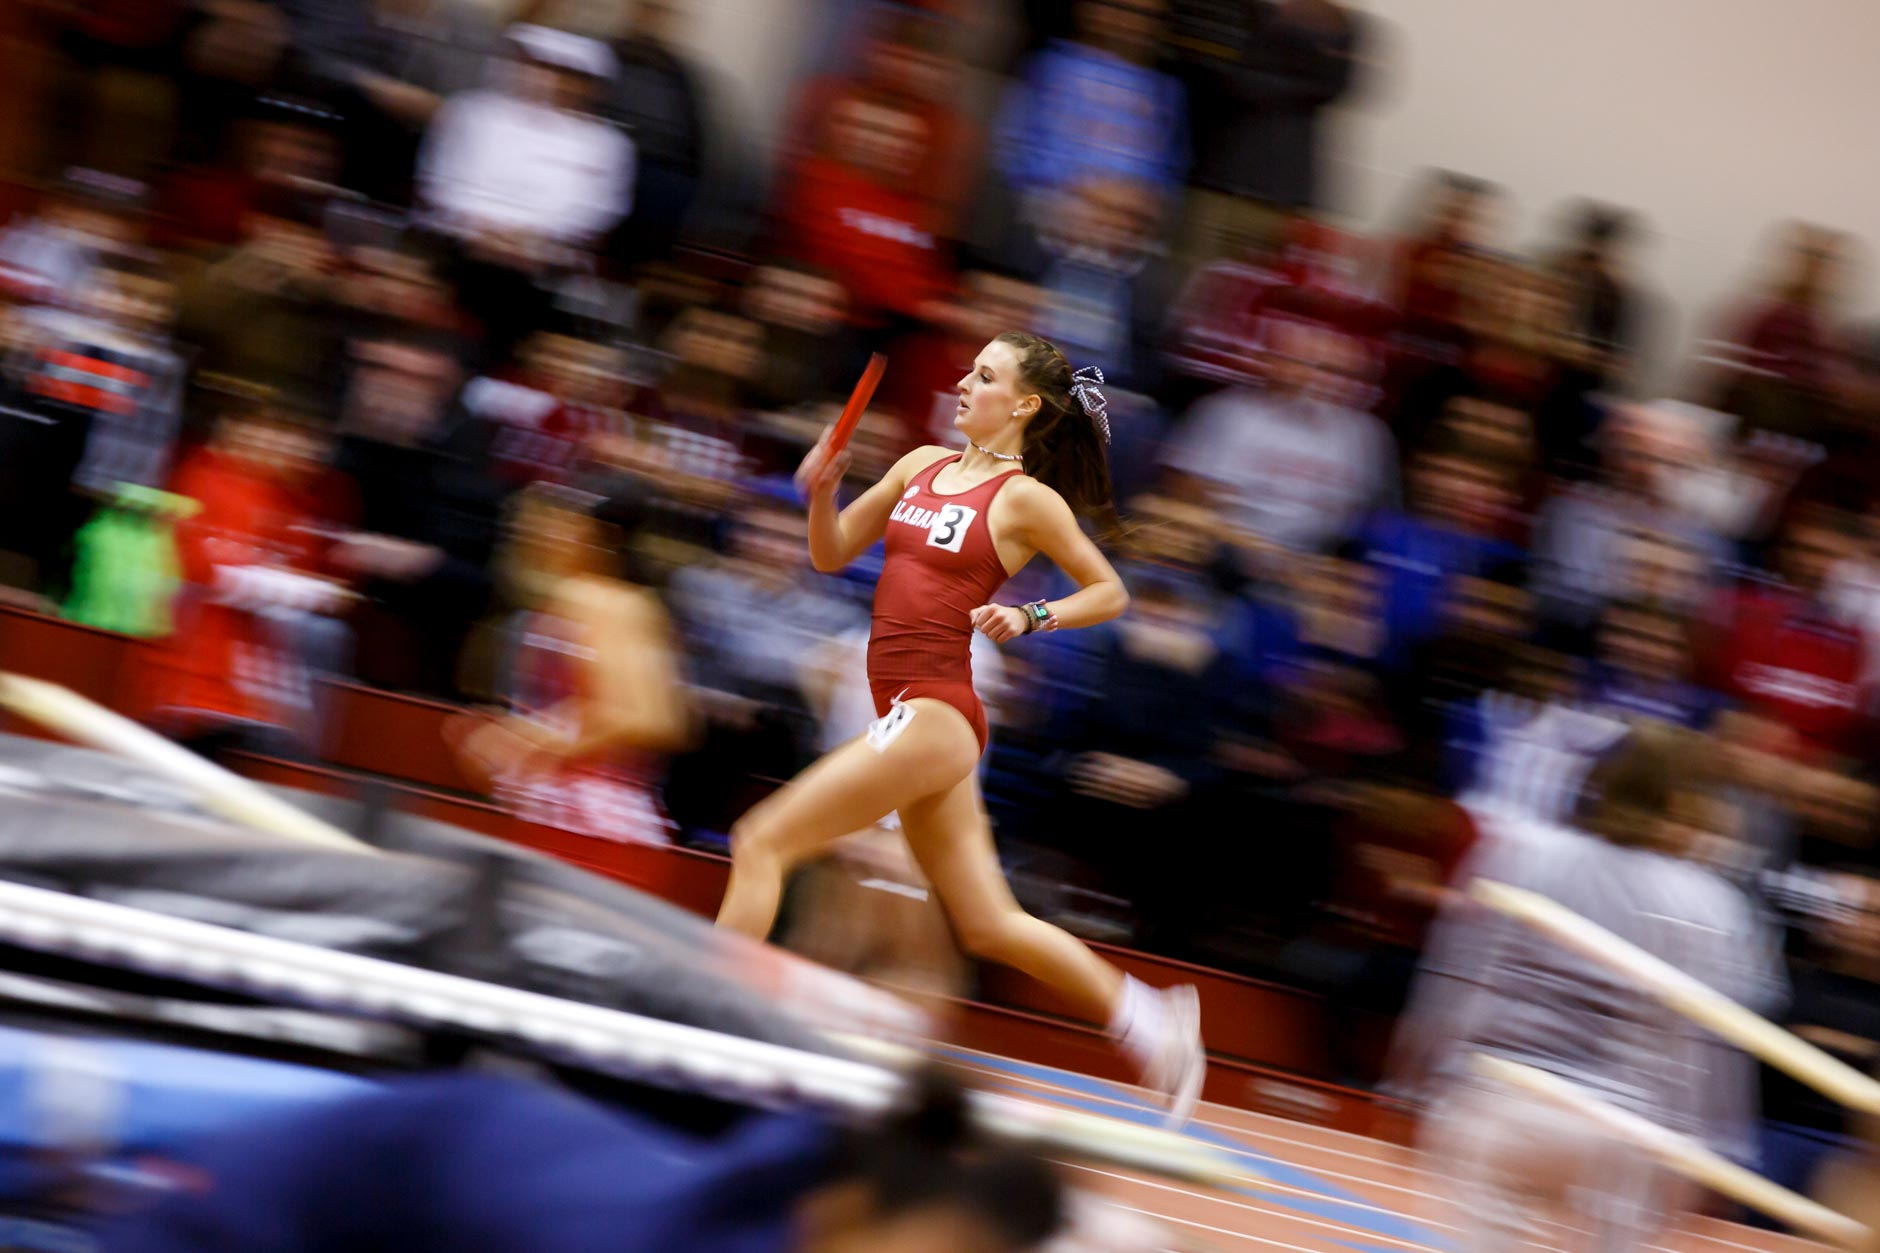 Alabama's Jami Reed competes in the distance medley during the Indiana University Relays in Bloomington, Indiana on Friday, Jan. 31, 2020. (Photo by James Brosher)